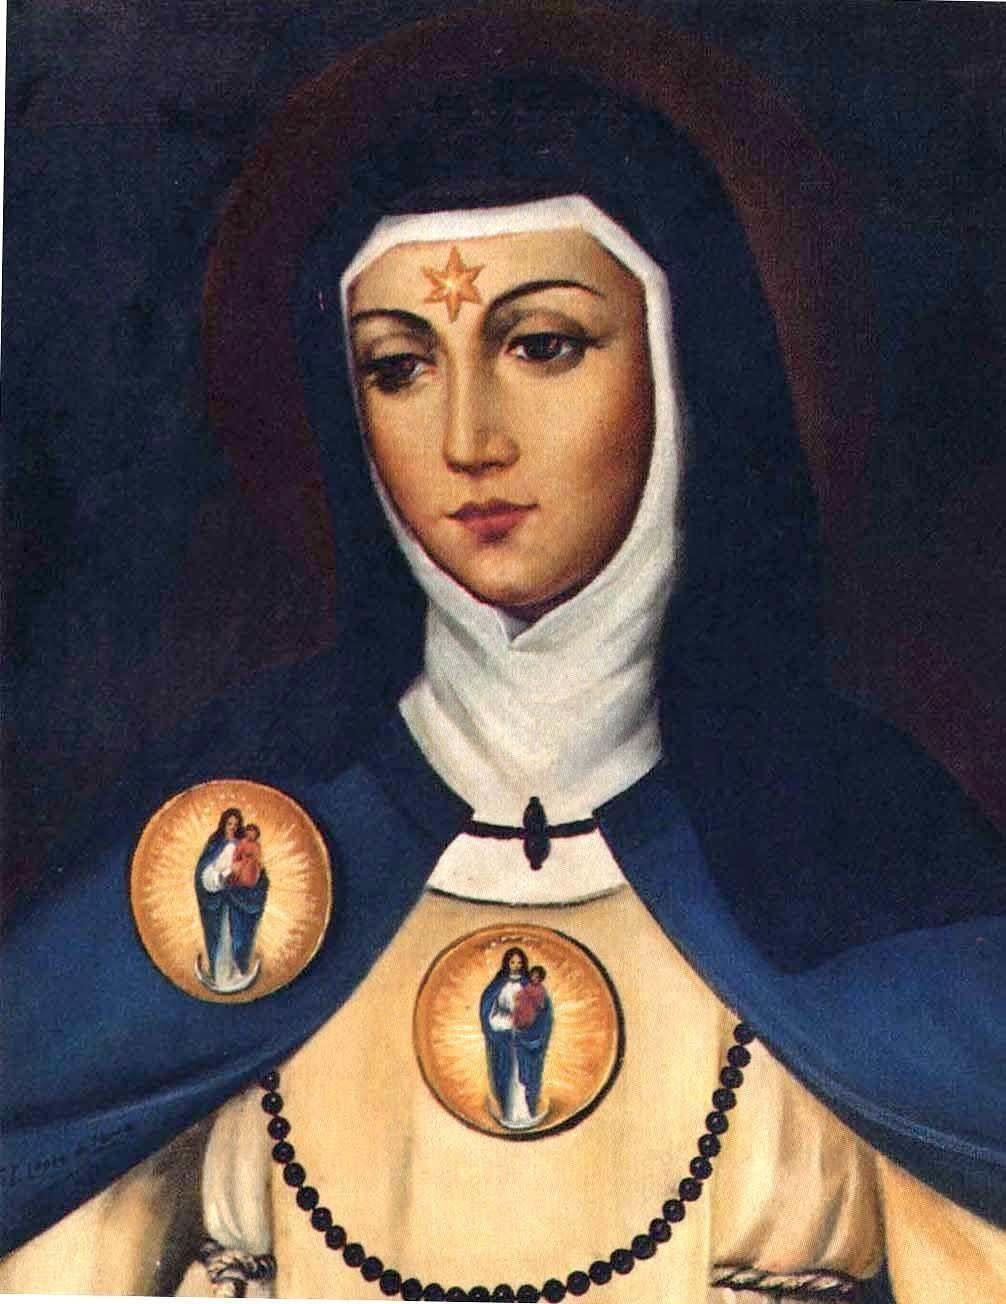 Born in 1424, <span>Beatrice of Silva</span>&amp;nbsp;abandoned a court life with Princess Isabel of Portugal to enter a Cistercian convent in Toledo. She lived at the convent until 1484, when she believed God summoned her to found a religious order. She started the Congregation of the Immaculate Conception of the Blessed Virgin Mary, where she lived and served as superior until her death circa 1492. Shortly before Beatrice&amp;rsquo;s death, Pope Innocent VIII <span>approved</span>&amp;nbsp;a the convent&amp;rsquo;s adoption of the Cistercian rule, which consisted of three guidelines: be silent and submissive to God&amp;rsquo;s direction; strive for a life of obscurity and piety; and love everyone with a holy love. Beatrice reportedly received a vision of the Virgin Mary dressed in a white habit with a white scapular and blue mantle, which formed the basis of the dress for her order.&amp;nbsp;Pope Paul VI canonized St. Beatrice in 1976.